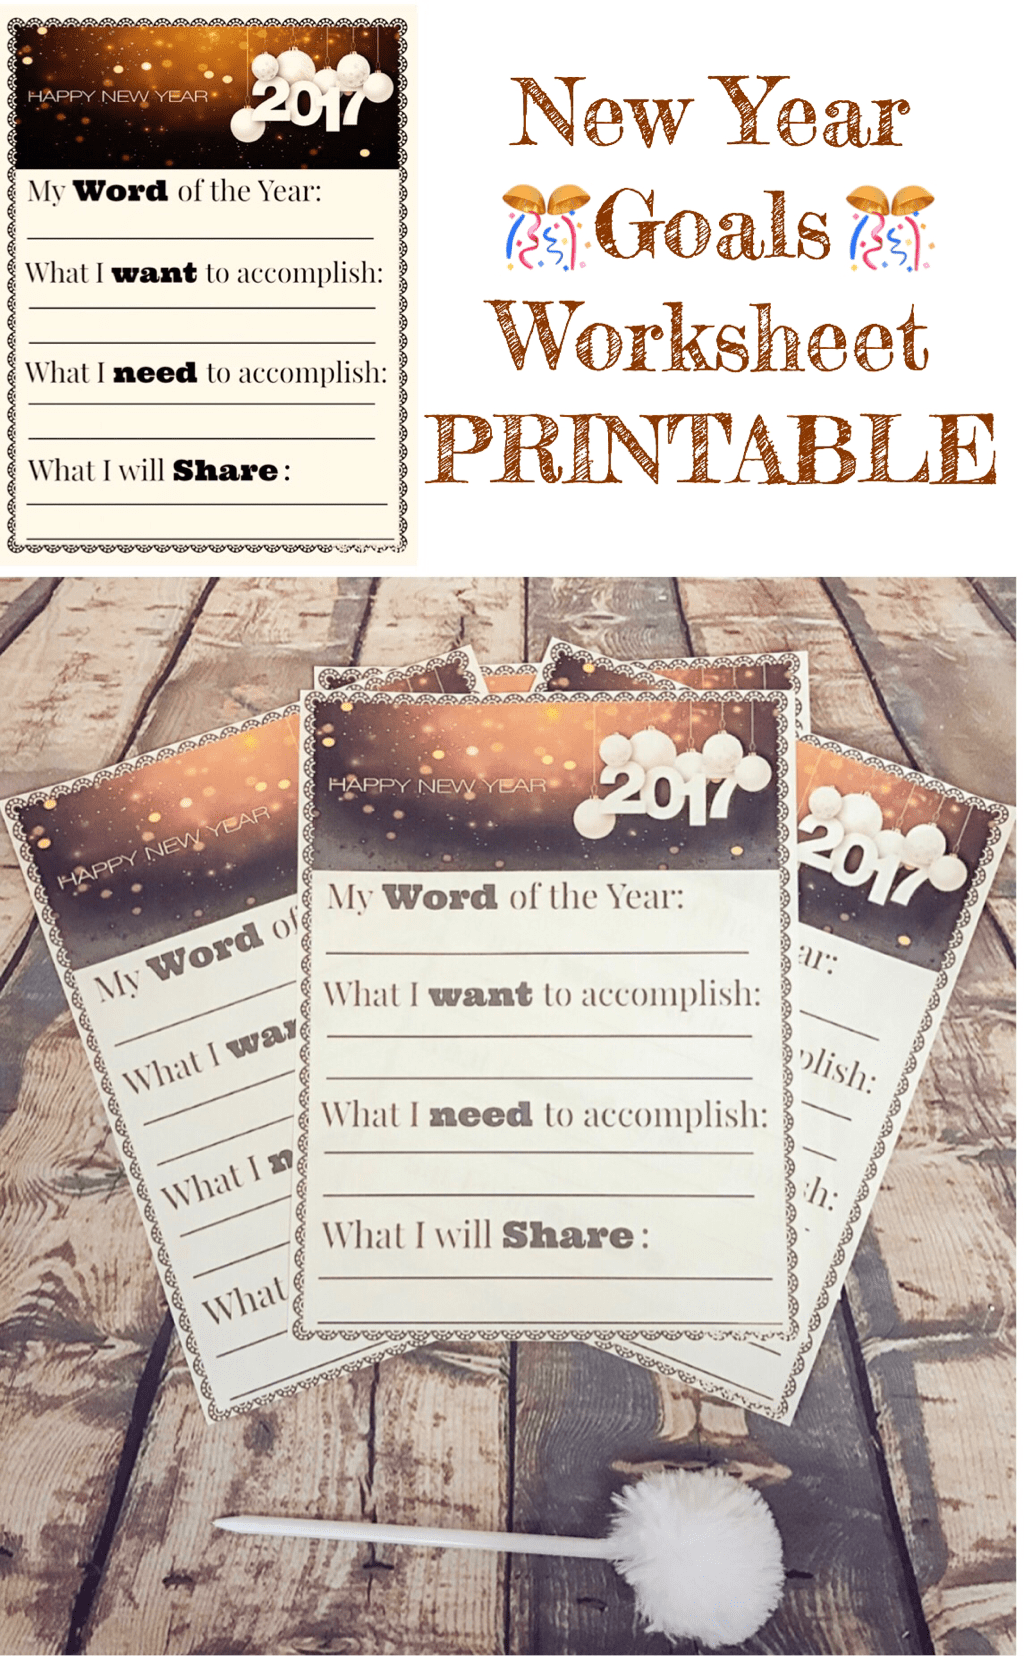 NEW YEAR GOALS WORKSHEET FREE PRINTABLE